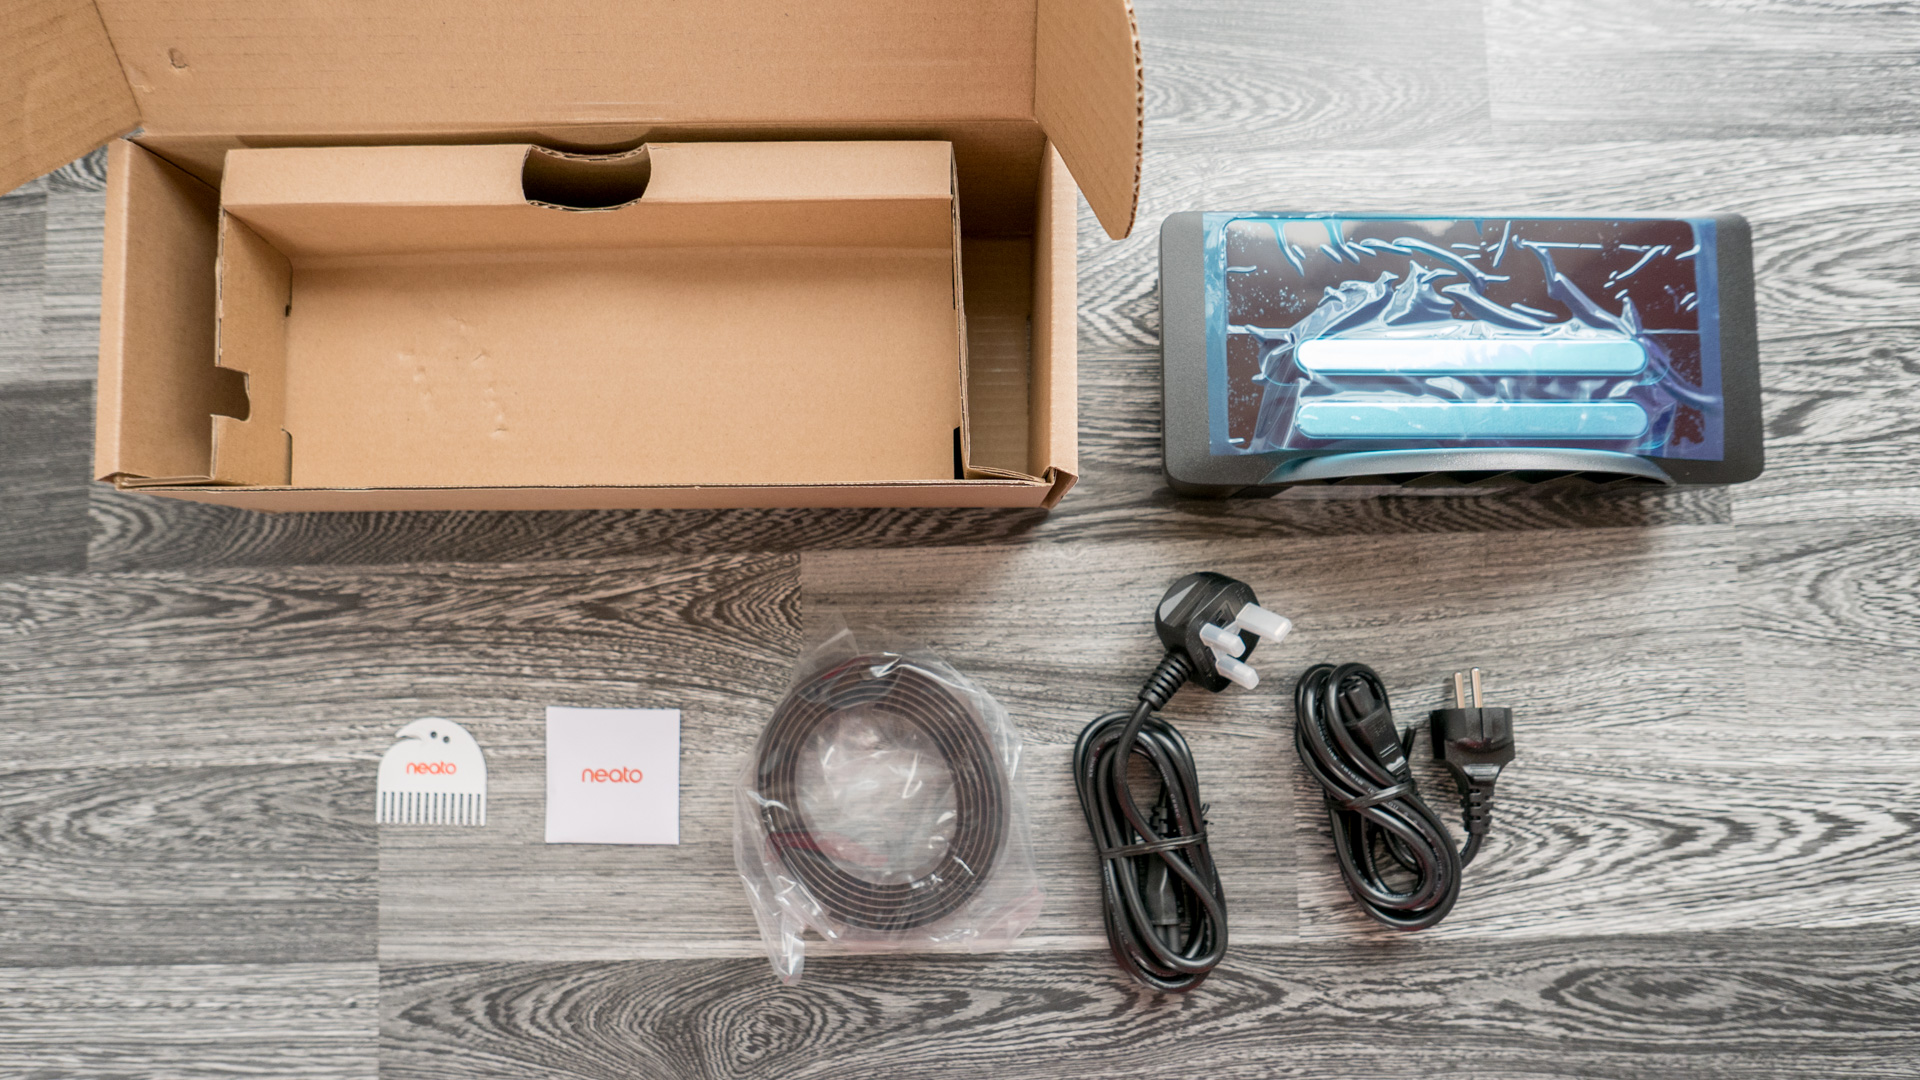 Neato Botvac D7 Unboxing 12